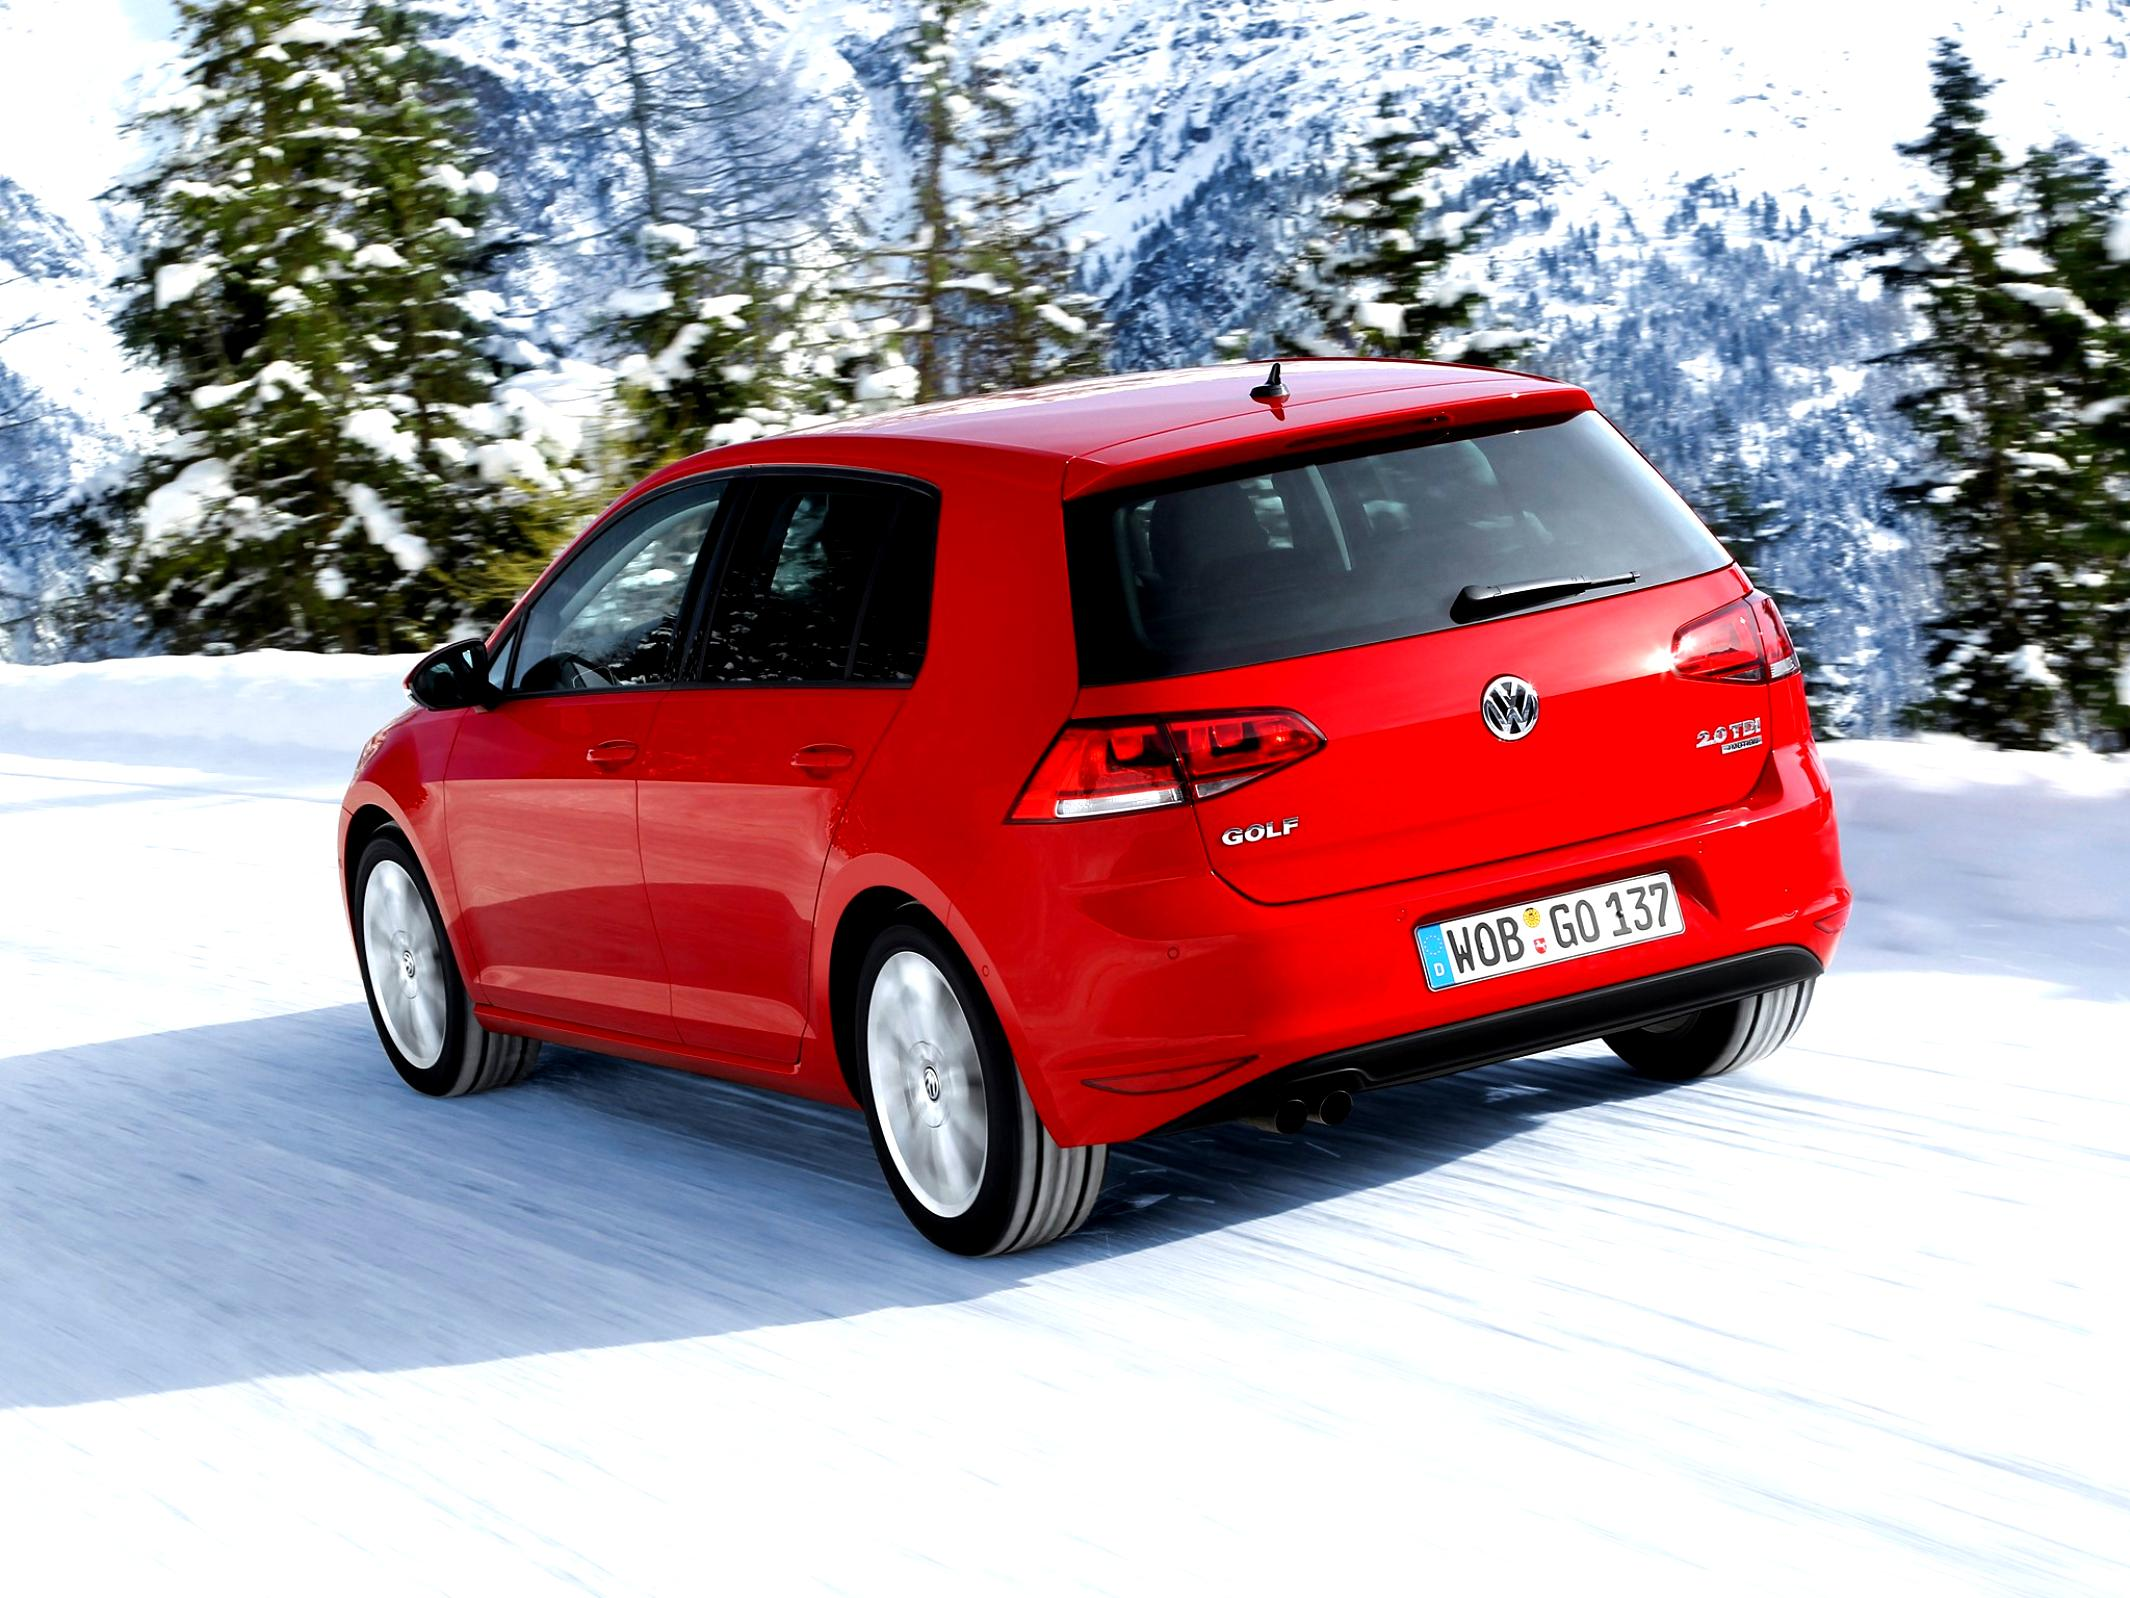 Volkswagen Golf VII 5 Doors 2012 #33